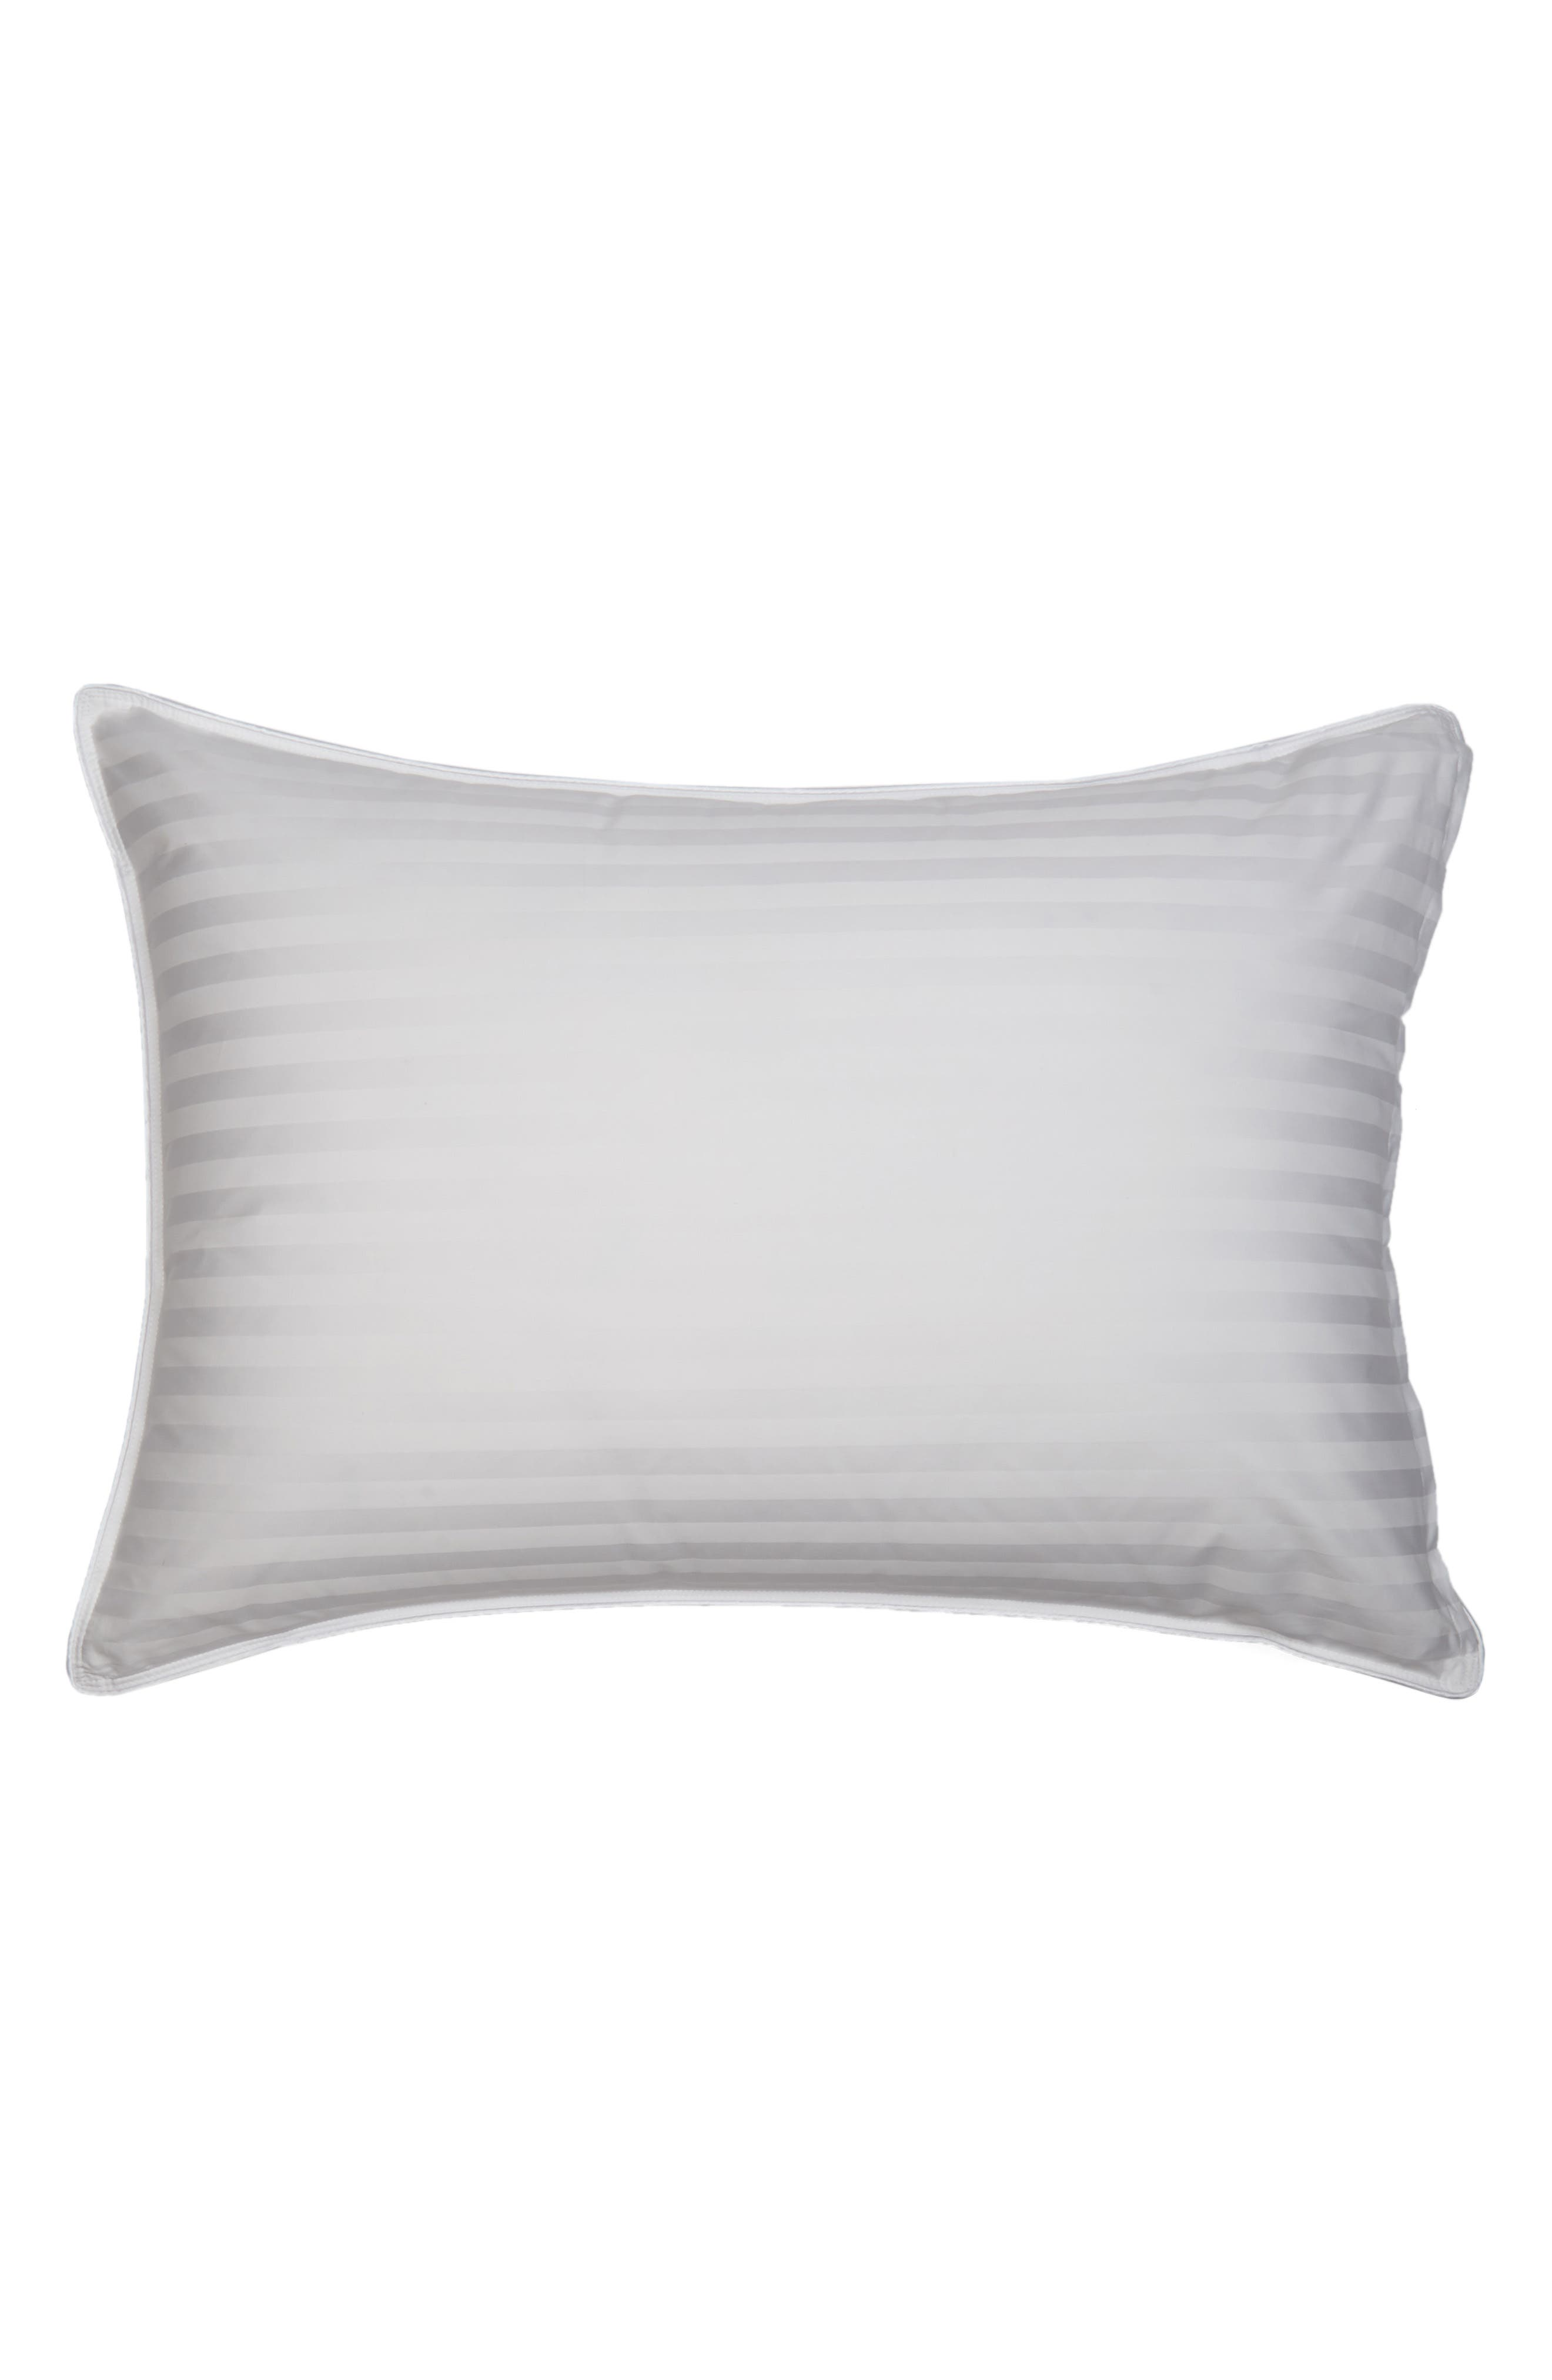 Feather & Down Chamber Pillow,                             Alternate thumbnail 2, color,                             WHITE